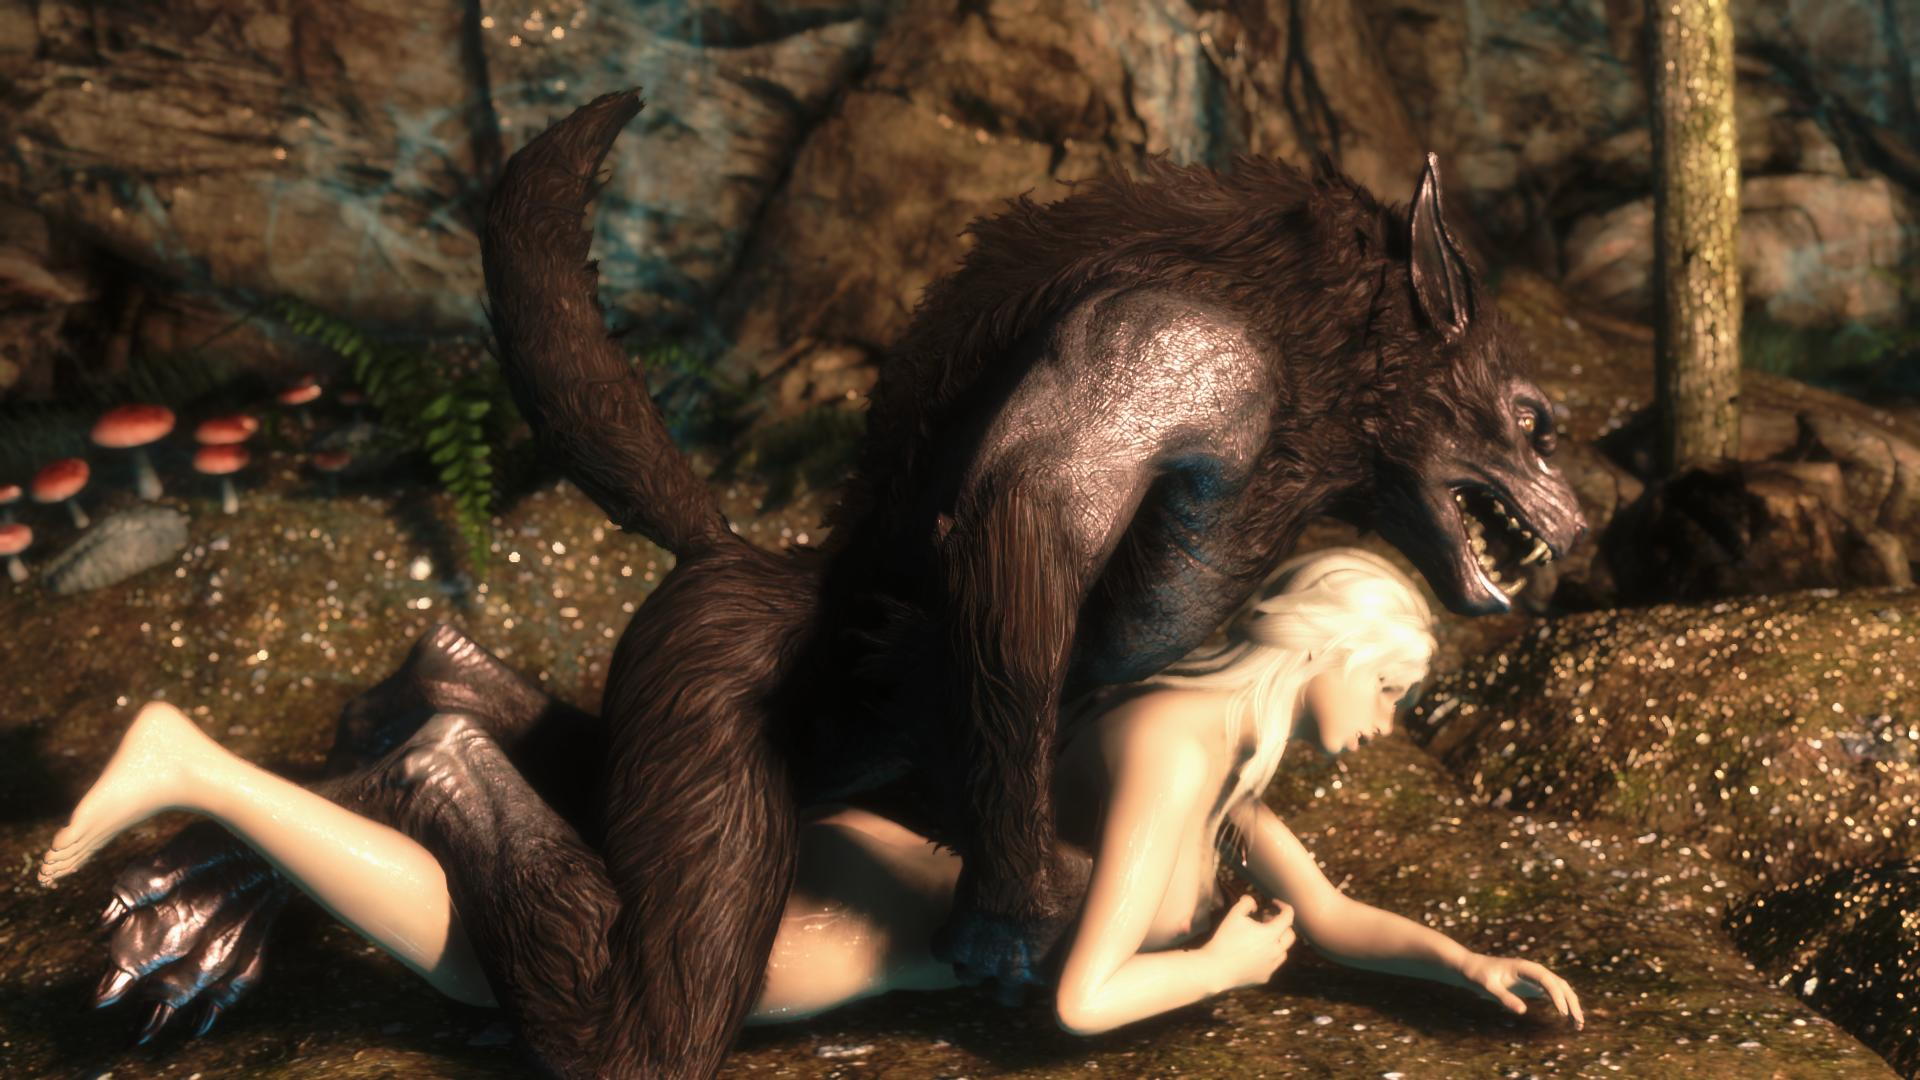 Sexy werewolf videos 3gp download sexy tube